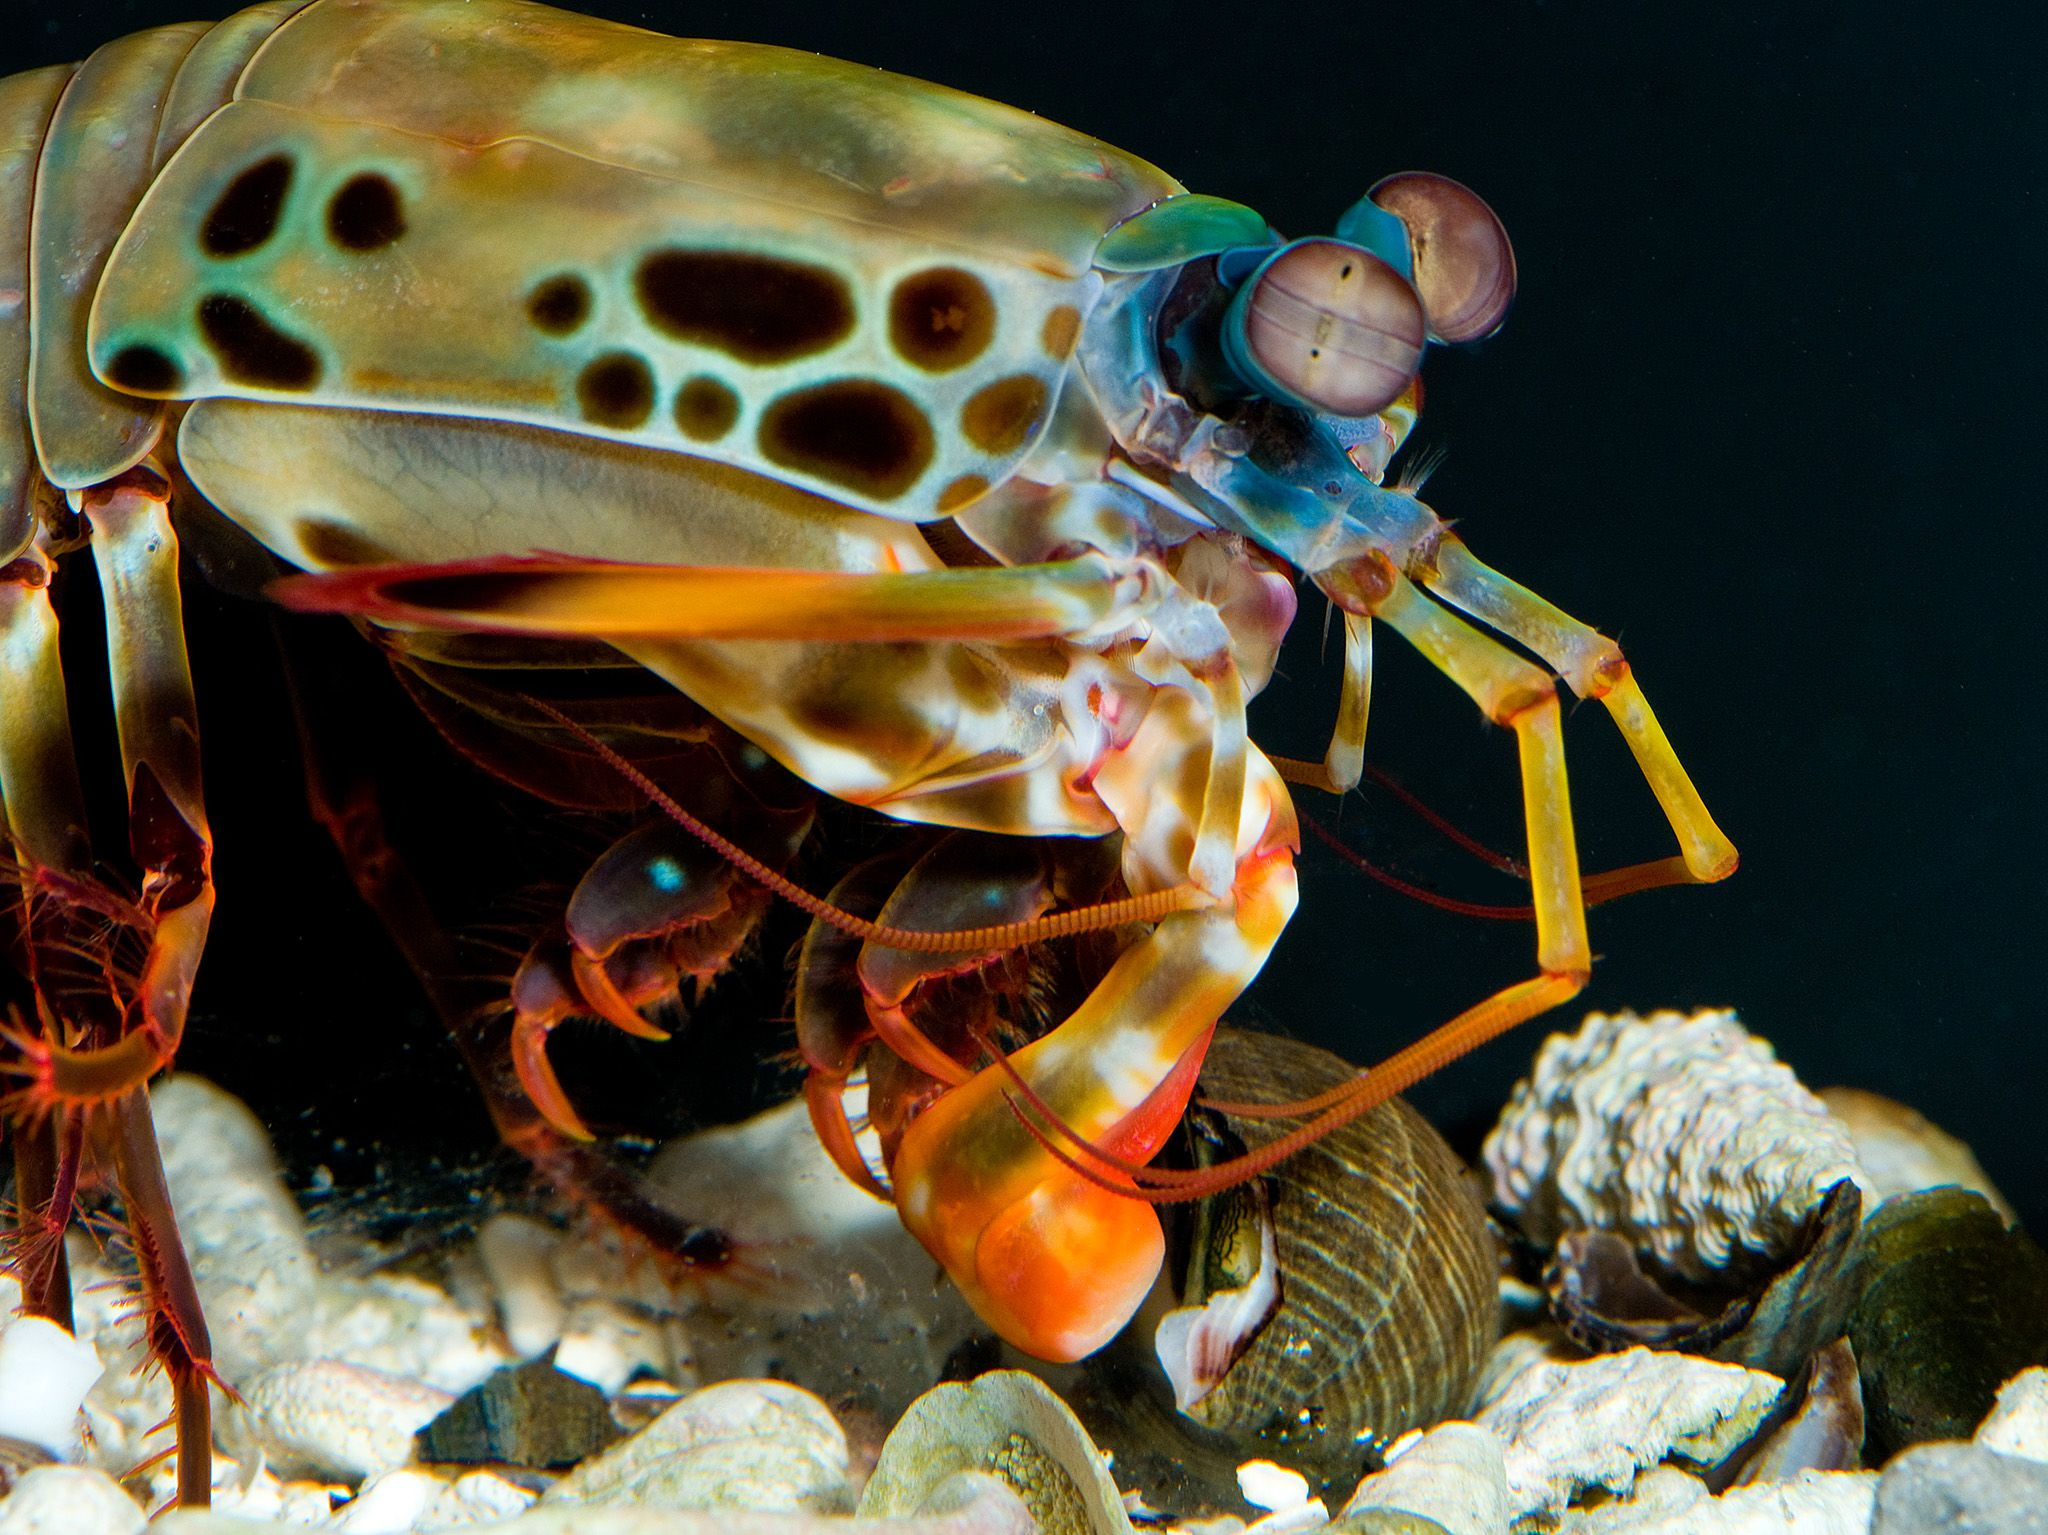 Berkeley, California: A female peacock mantis shrimp (Odontodactylus scyllarus) uses a powerful... [Photo of the day - October 2017]